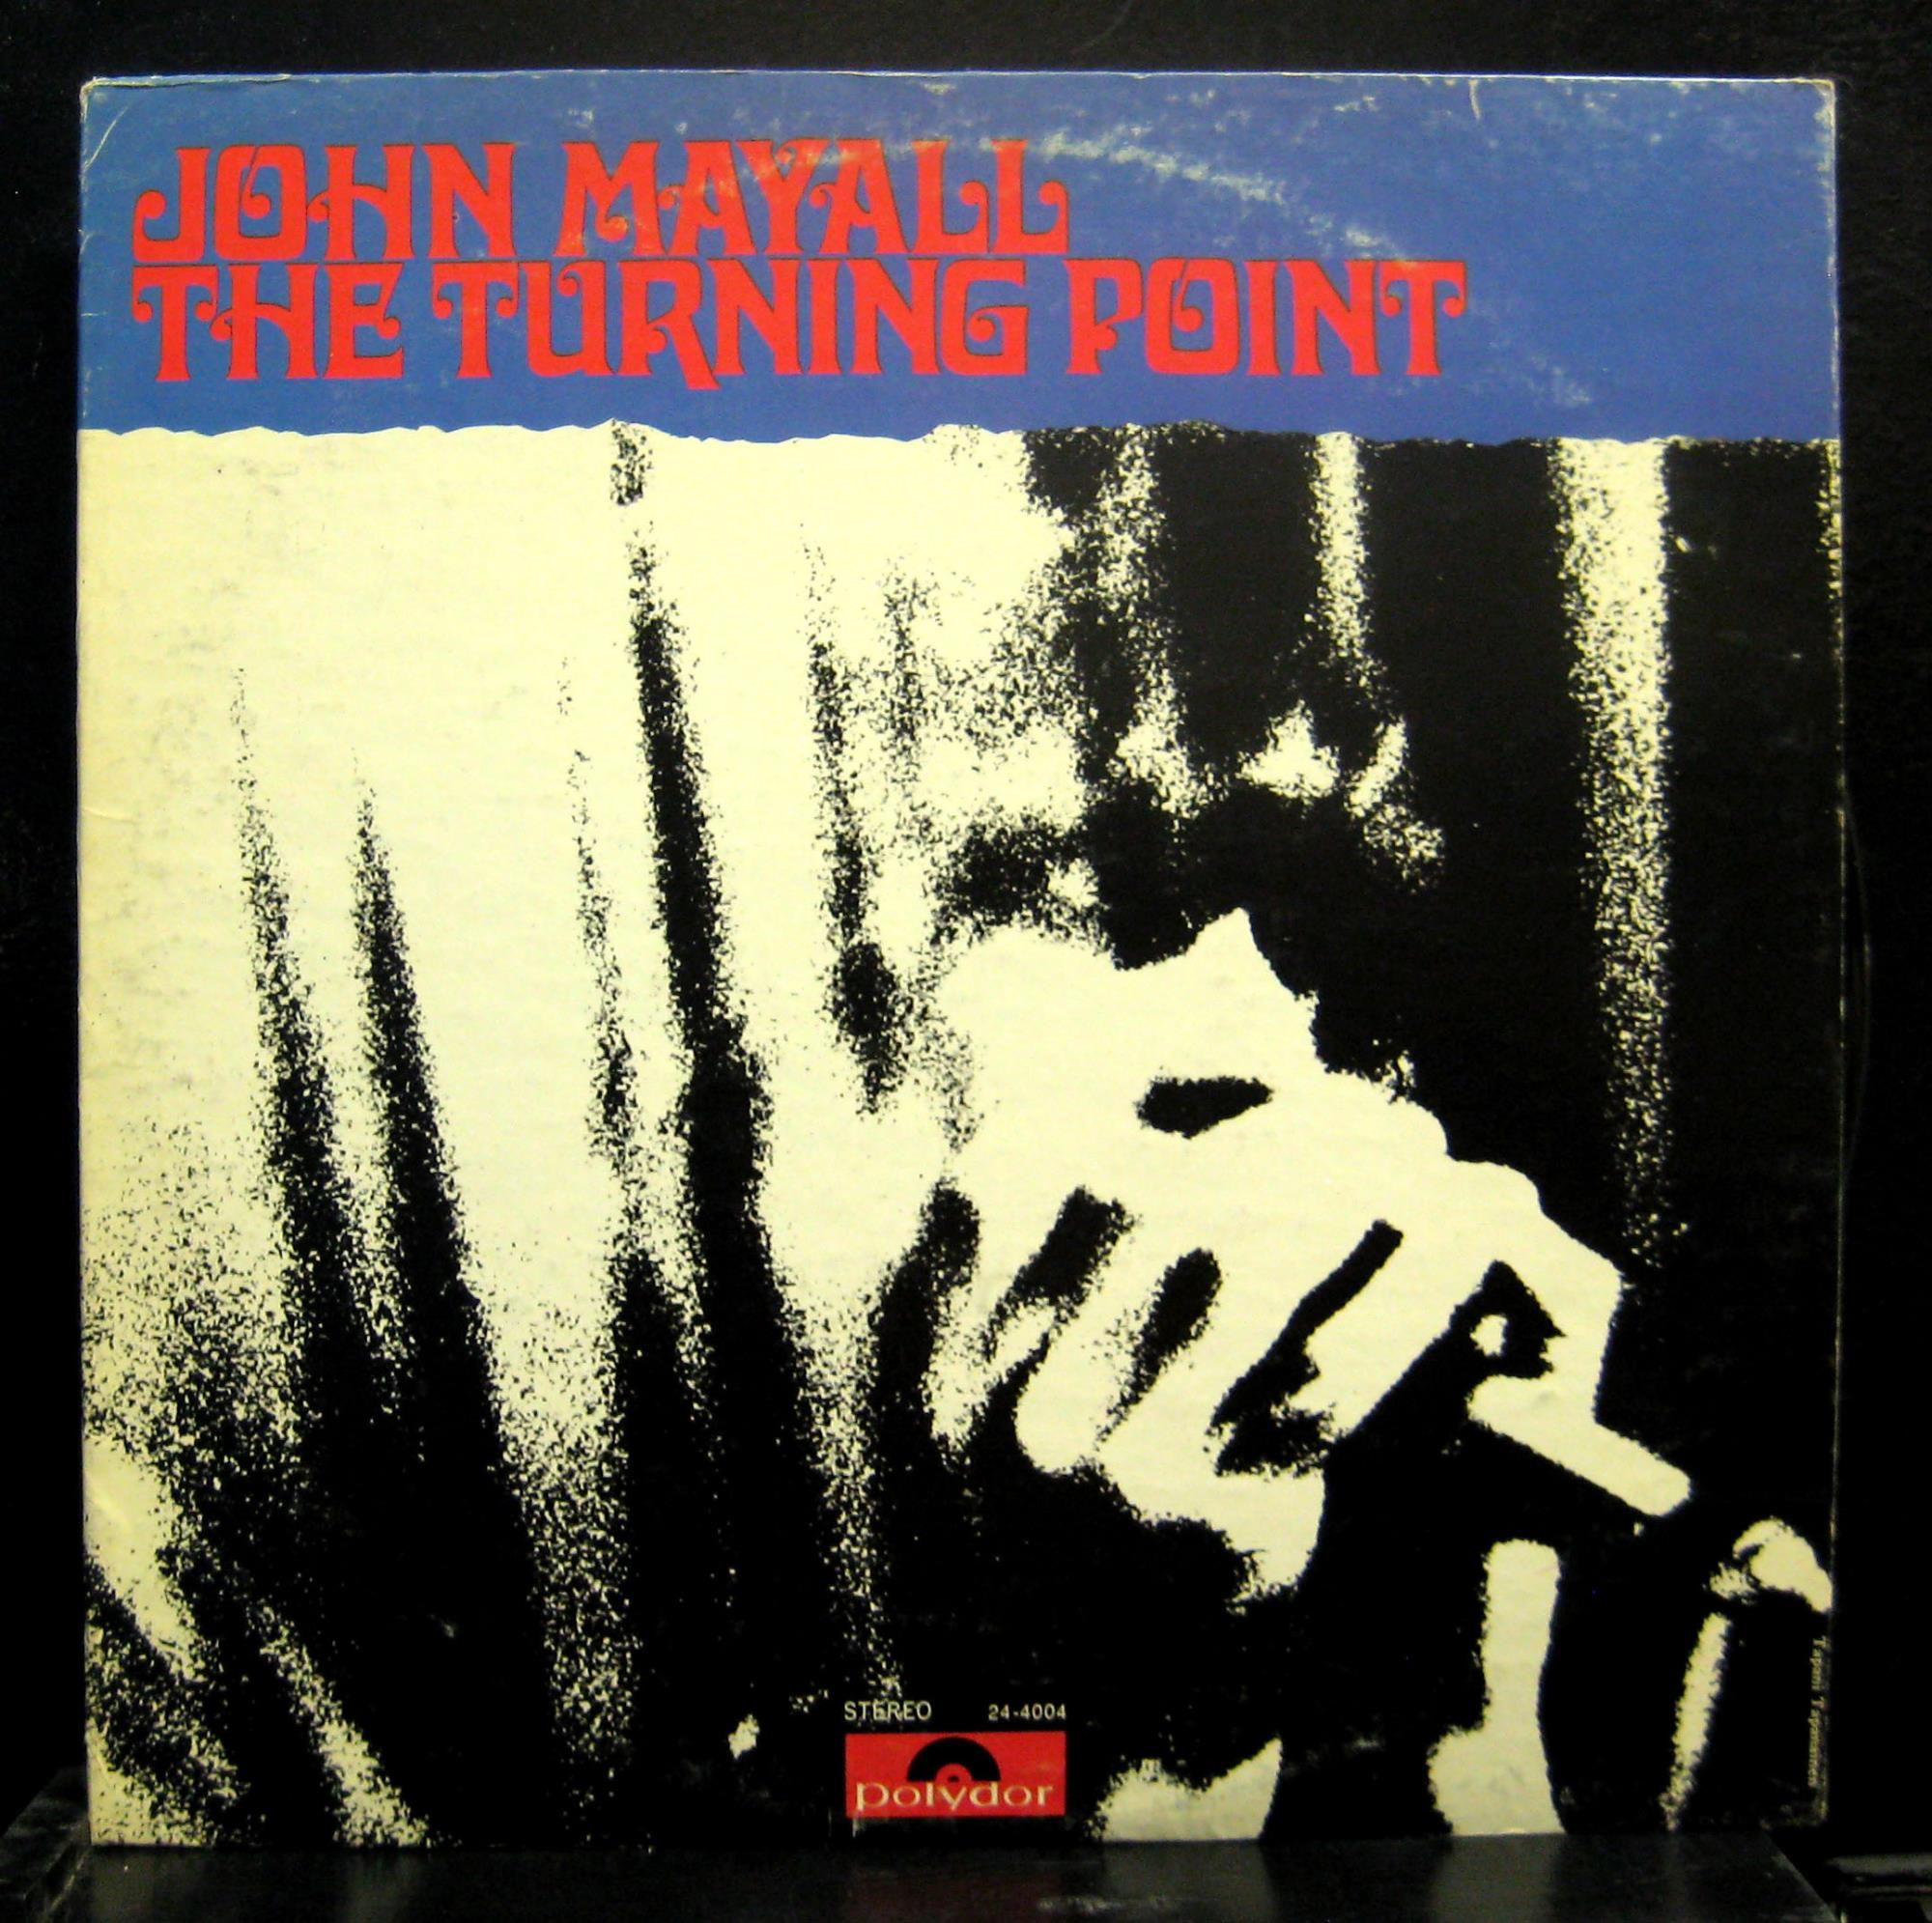 John Mayall Discography at Discogs